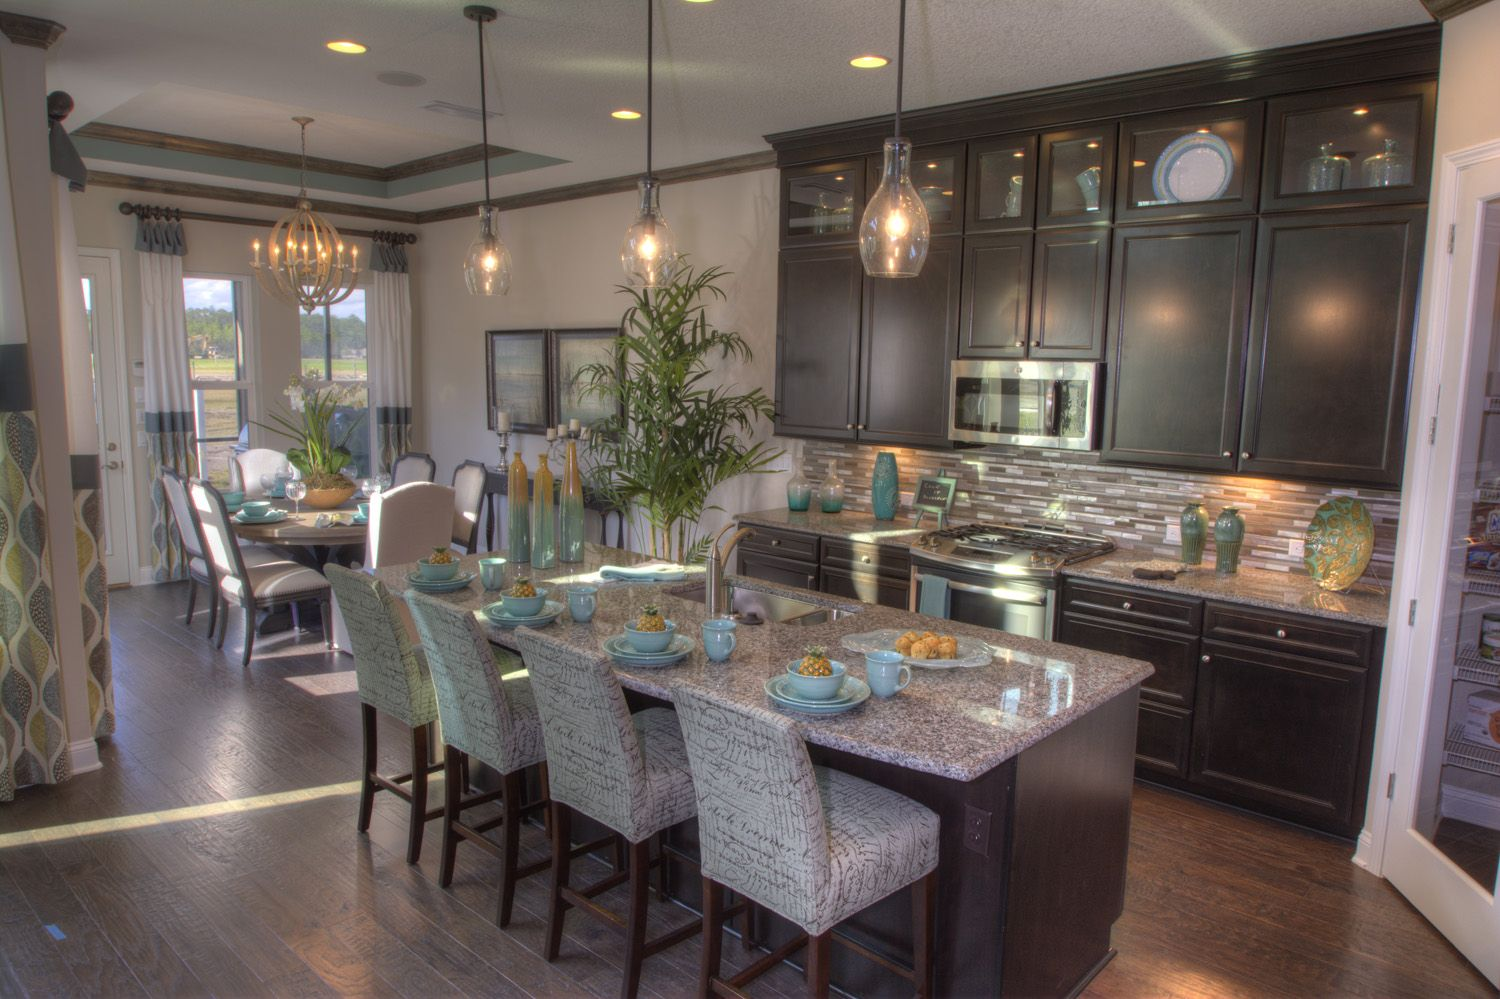 The Lucca Model Kitchen by ICI Homes in Siena at Town Center ... on beazer homes design center, shea homes design center, ryland homes design center,